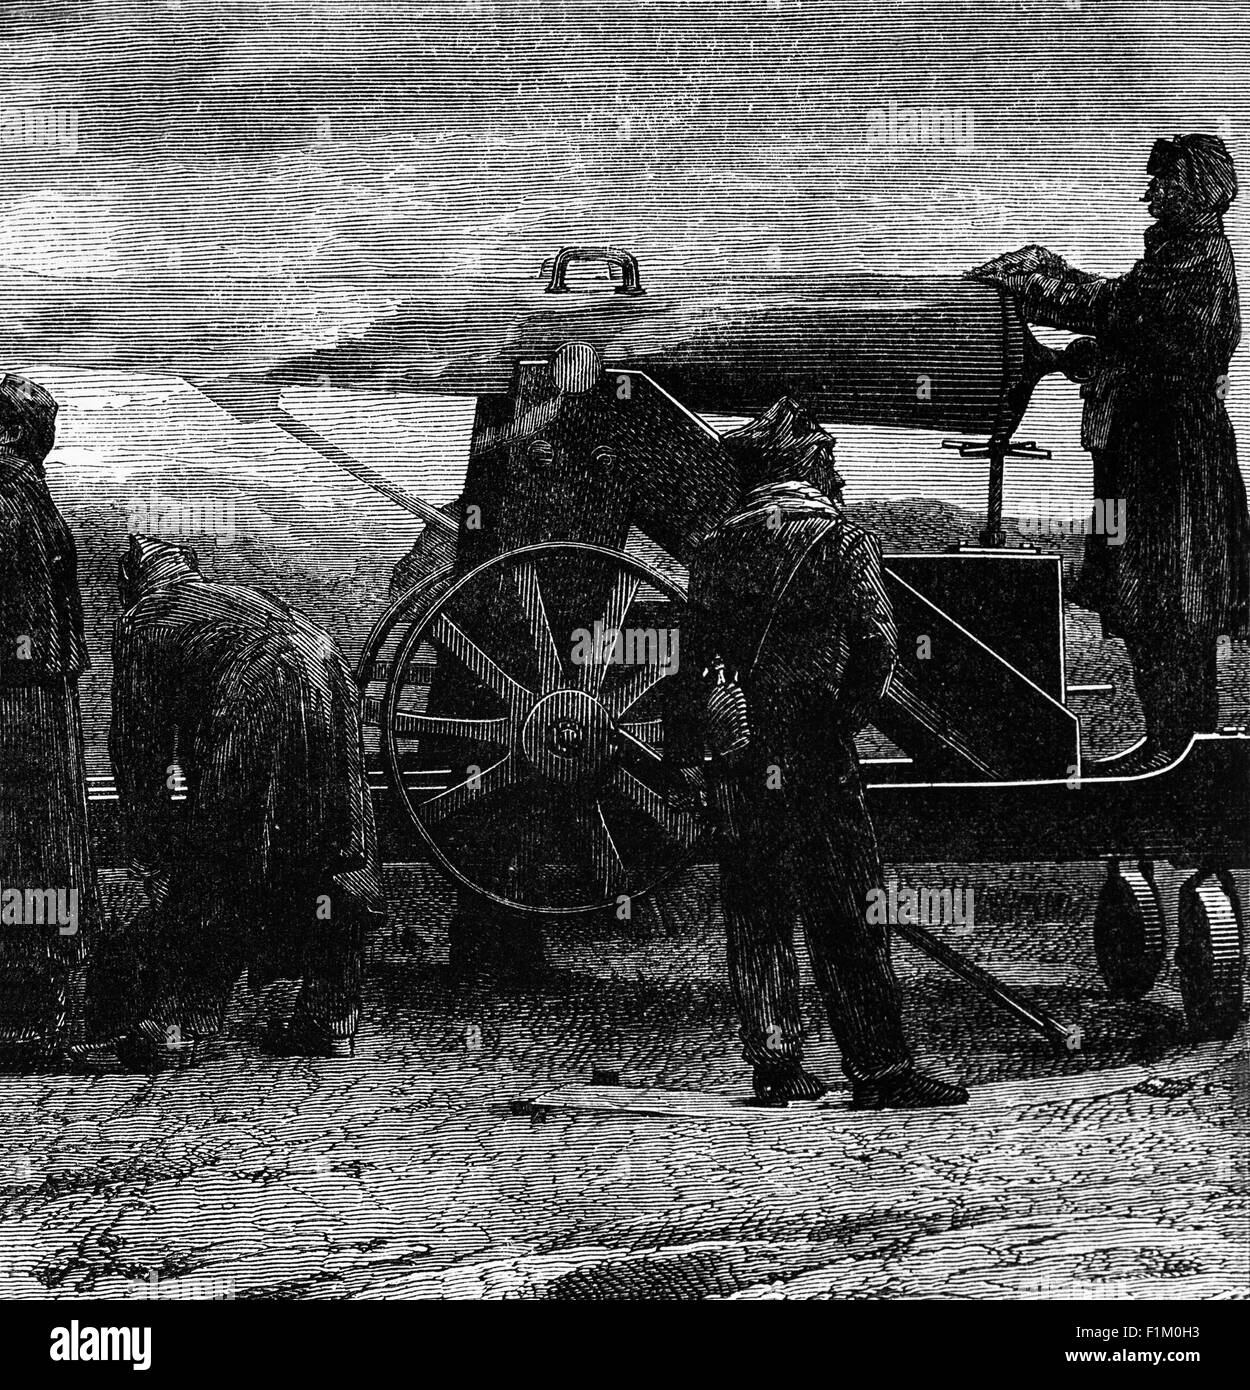 Large Cannon used during the Franco-Prussian War of 1870-1871. - Stock Image